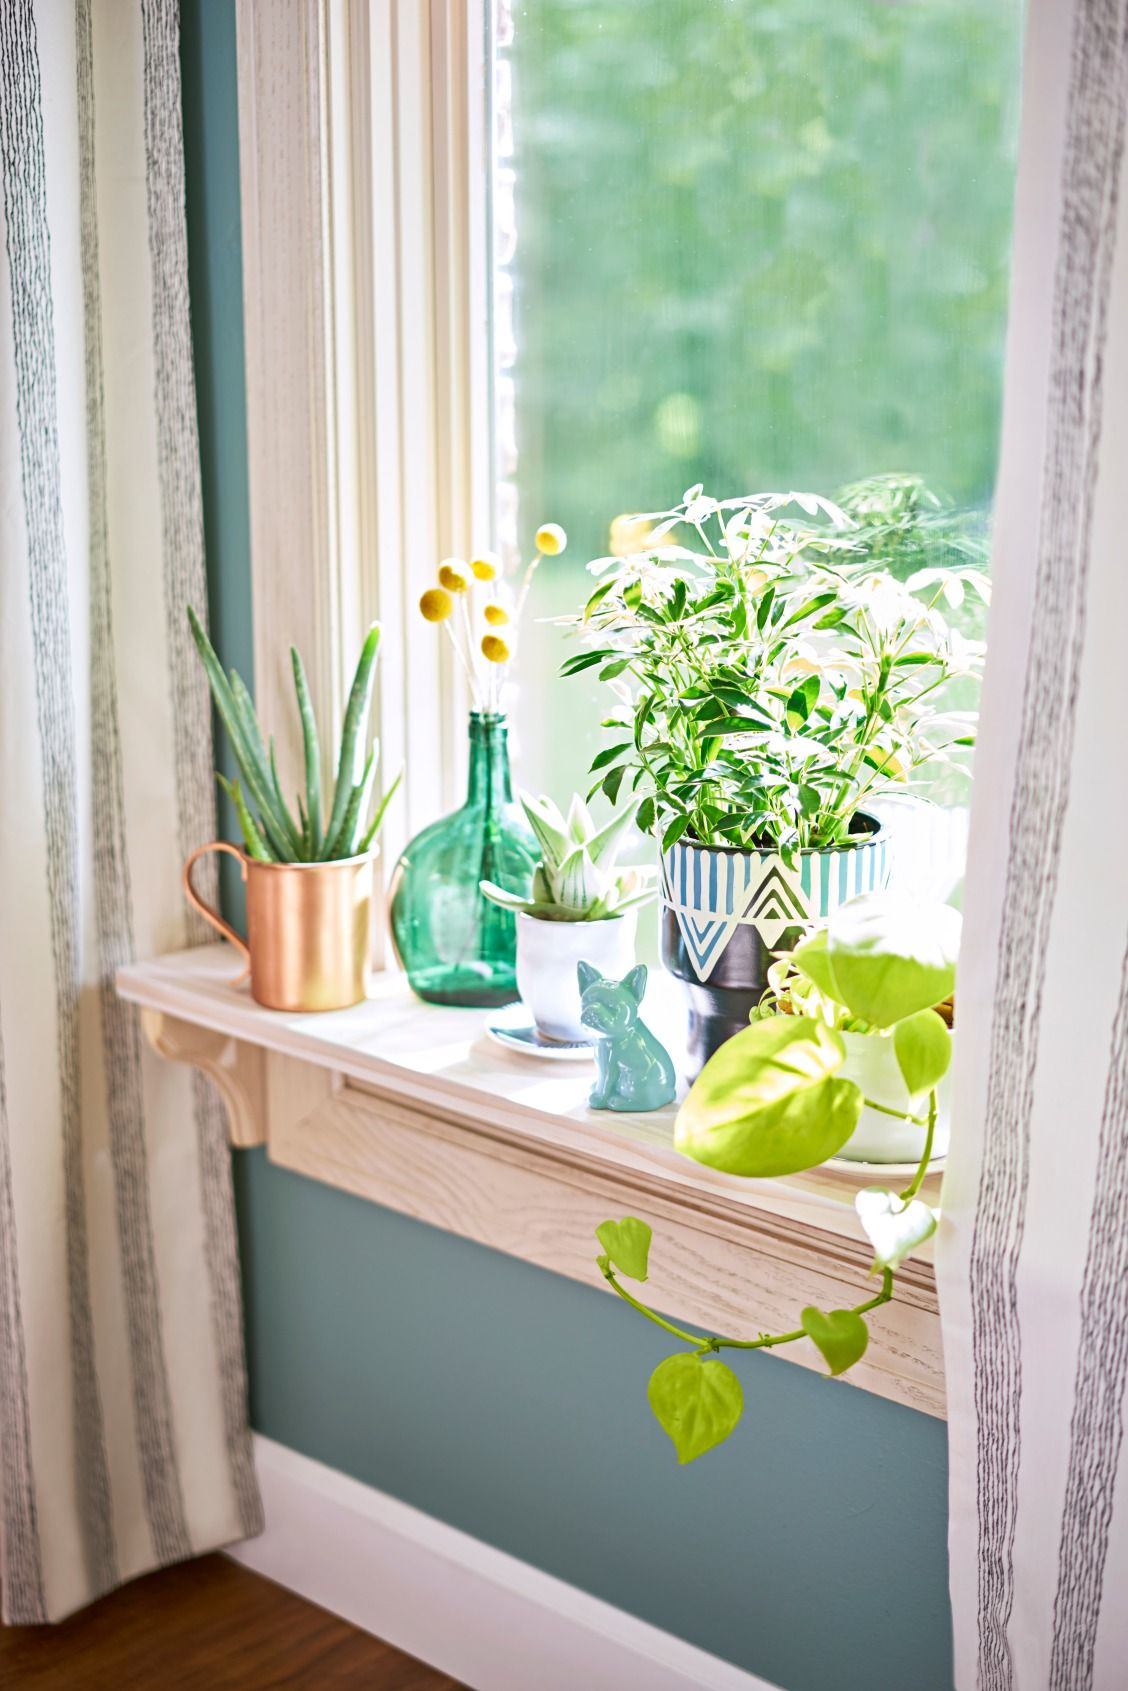 Bring The Outdoors In A Windowsill Is The Perfect Spot For A Mini Garden Display Bright Plants In Pretty Colorful Contai Window Sill Decor Decor Ledge Decor